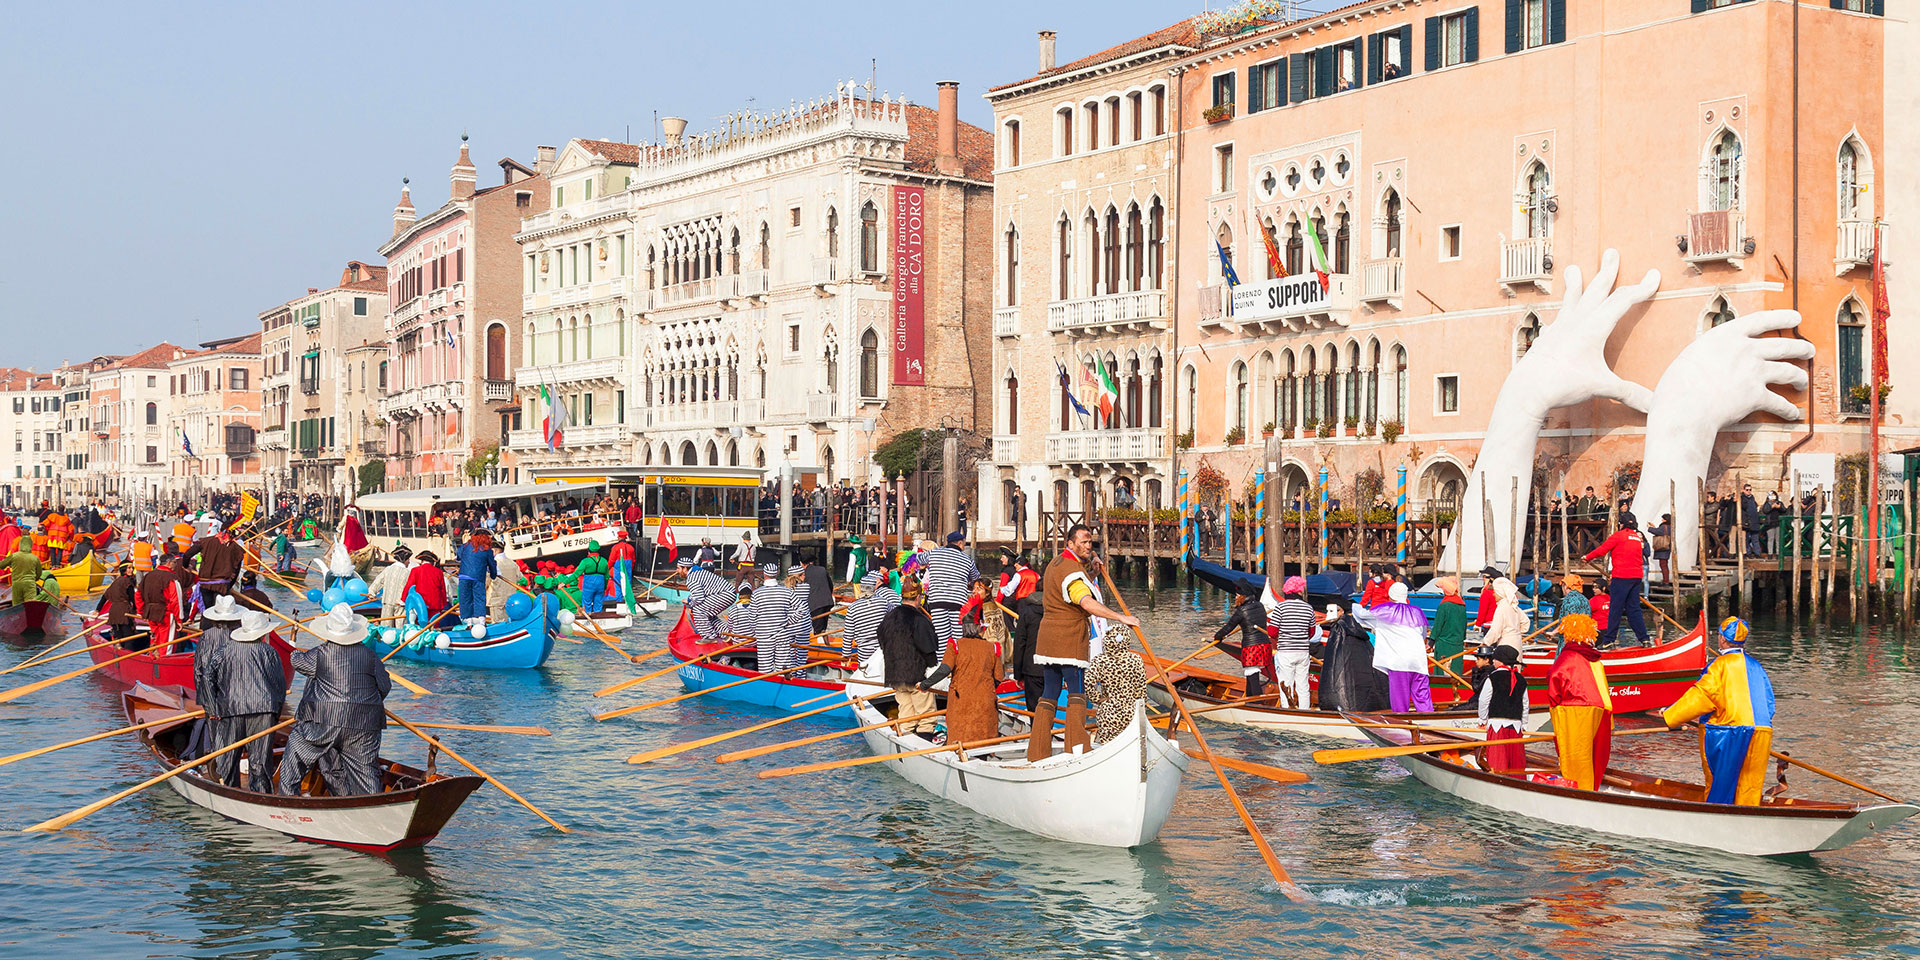 Watch as locals the open water in colorful costume. (Photo: Alamy)